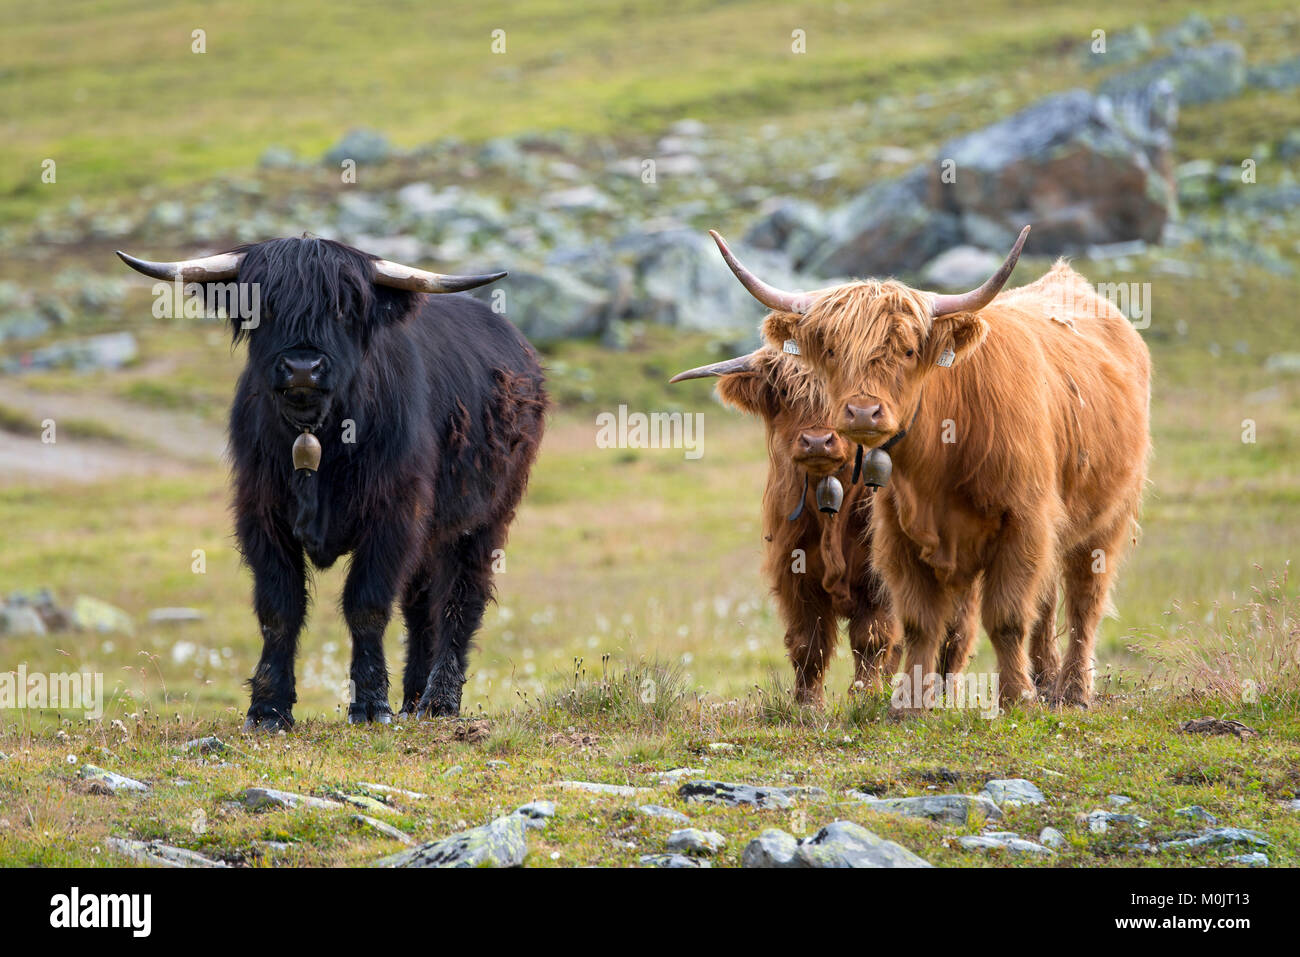 Scottish Highland cattle on the alpine pasture, Scheidseen, Galtür, Tyrol, Austria - Stock Image